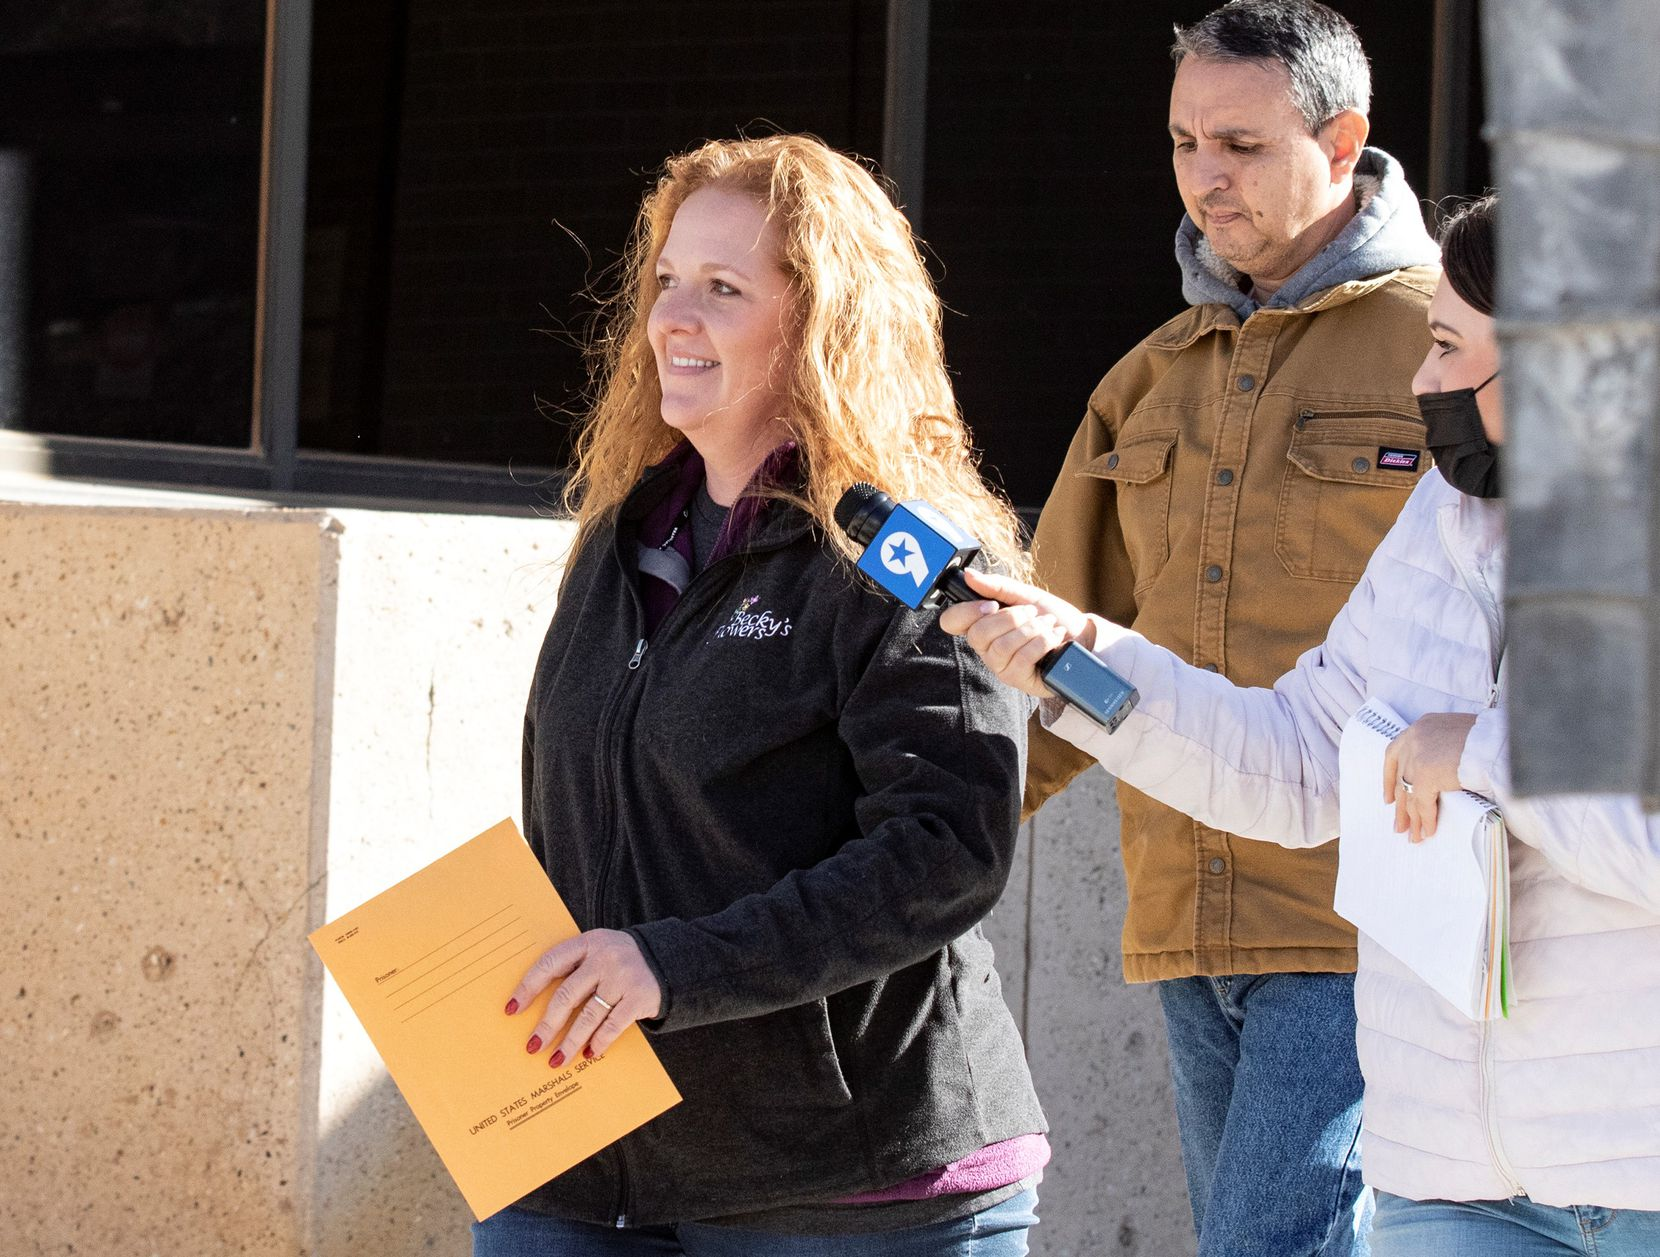 Jenny Cudd (left) outside the federal courthouse in Midland. A judge recently allowed her to travel to Mexico while on pretrial release for a business trip, which made national headlines.